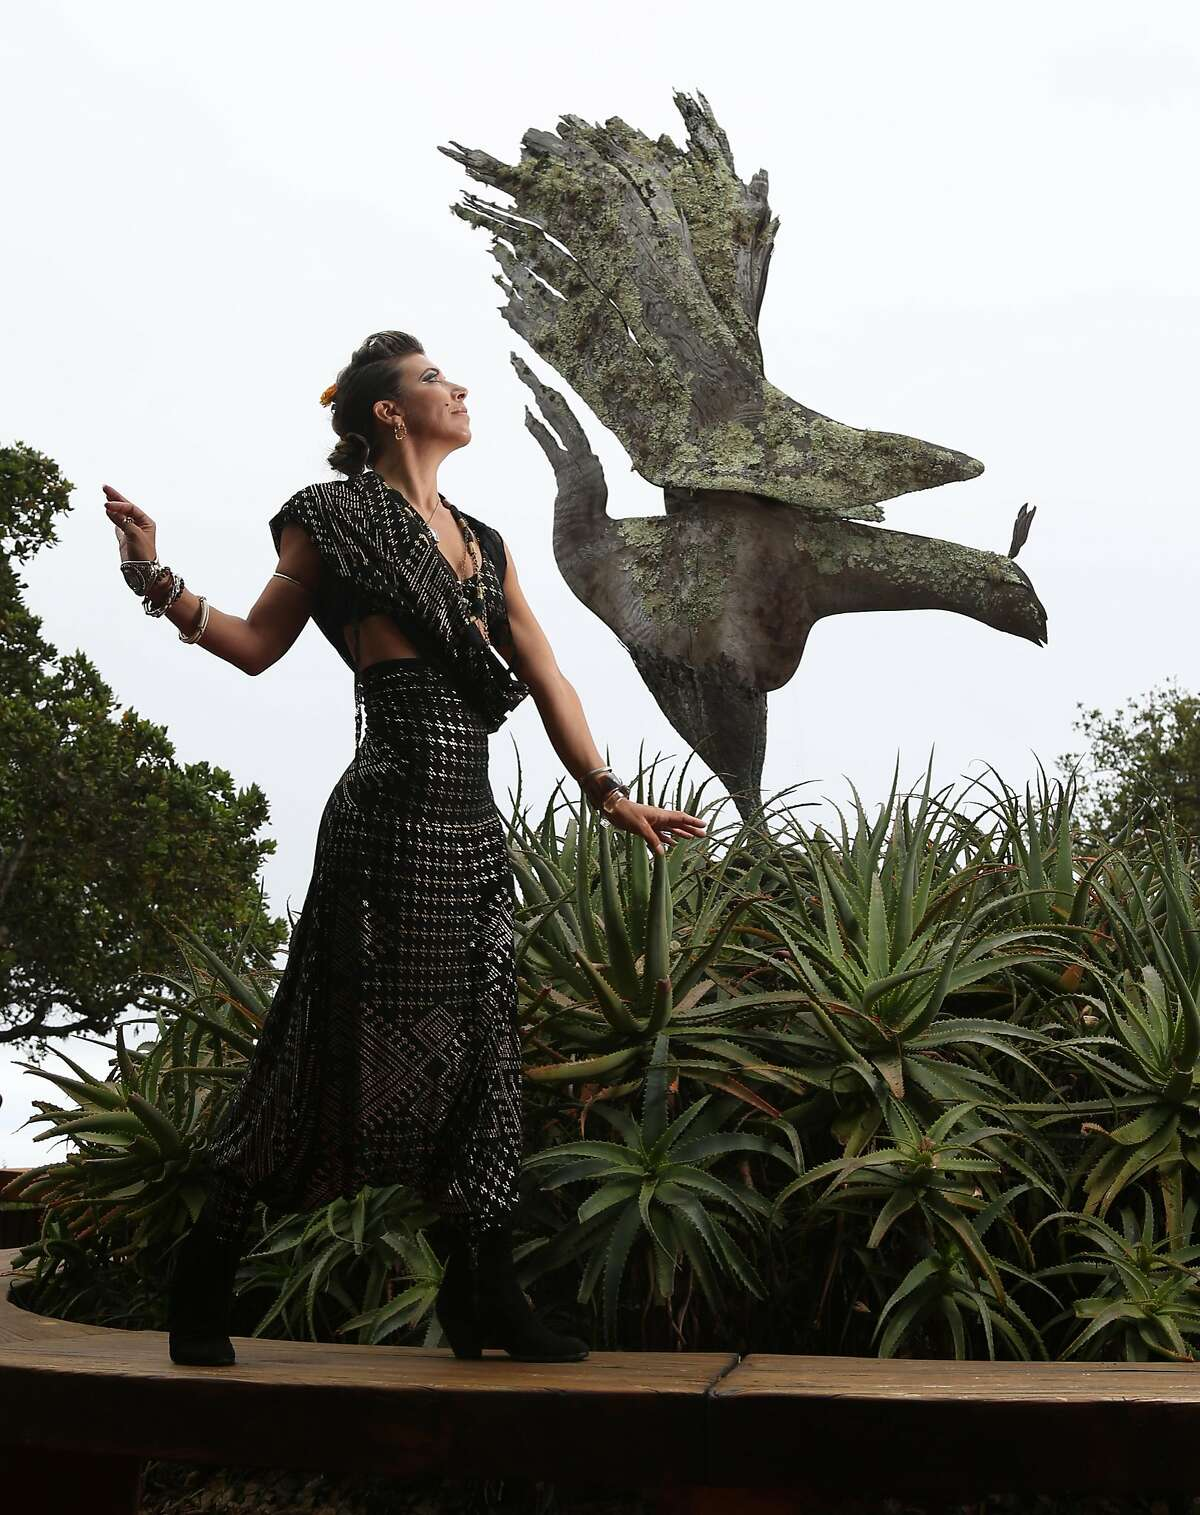 """Rosalia Webster, artist and Big Sur native, photographed near The Phoenix Bird sculpture at Nepenthe restaurant in Big Sur, Calif. on Tuesday, May 22, 2018. The sculpture is the inspiration for much of her art and was made by the famed sculptor Edmund Kara. The performance event, """"Big SurCus,"""" is the brainchild of Webster, a burlesque dancer and performer who has built a show looking back at Big Sur's influence in the Golden Age of Hollywood. It will be staged this summer on the grounds of the Henry Miller Library in Big Sur."""